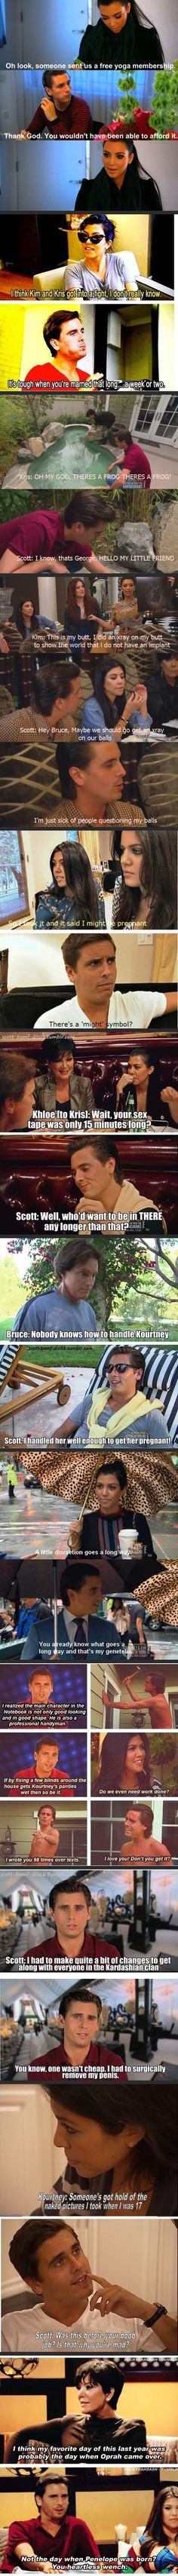 Scott Disick deserves a show of his own. Get this man a show already.